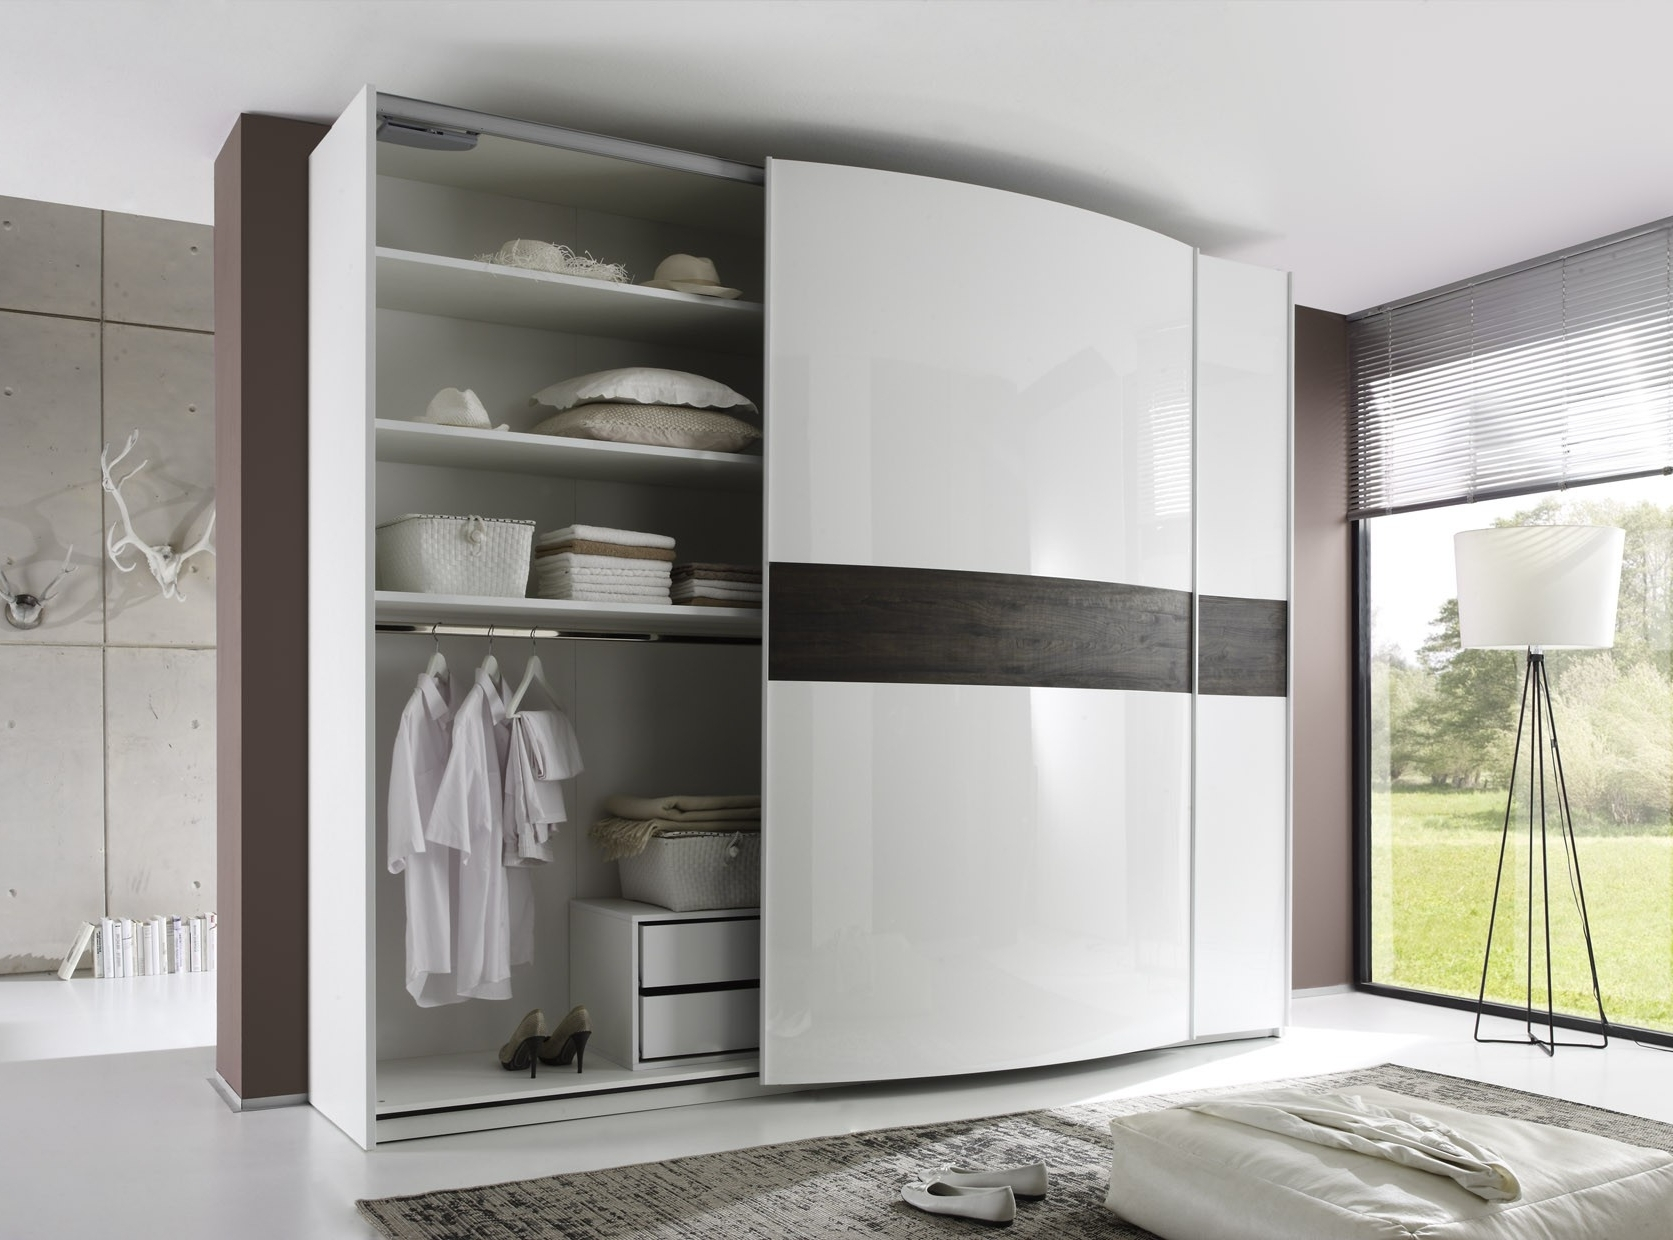 2018 High Gloss Sliding Wardrobes Throughout Tambura Curved Sliding Doors Wardrobe, White + Wenge Buy Online At (View 1 of 15)